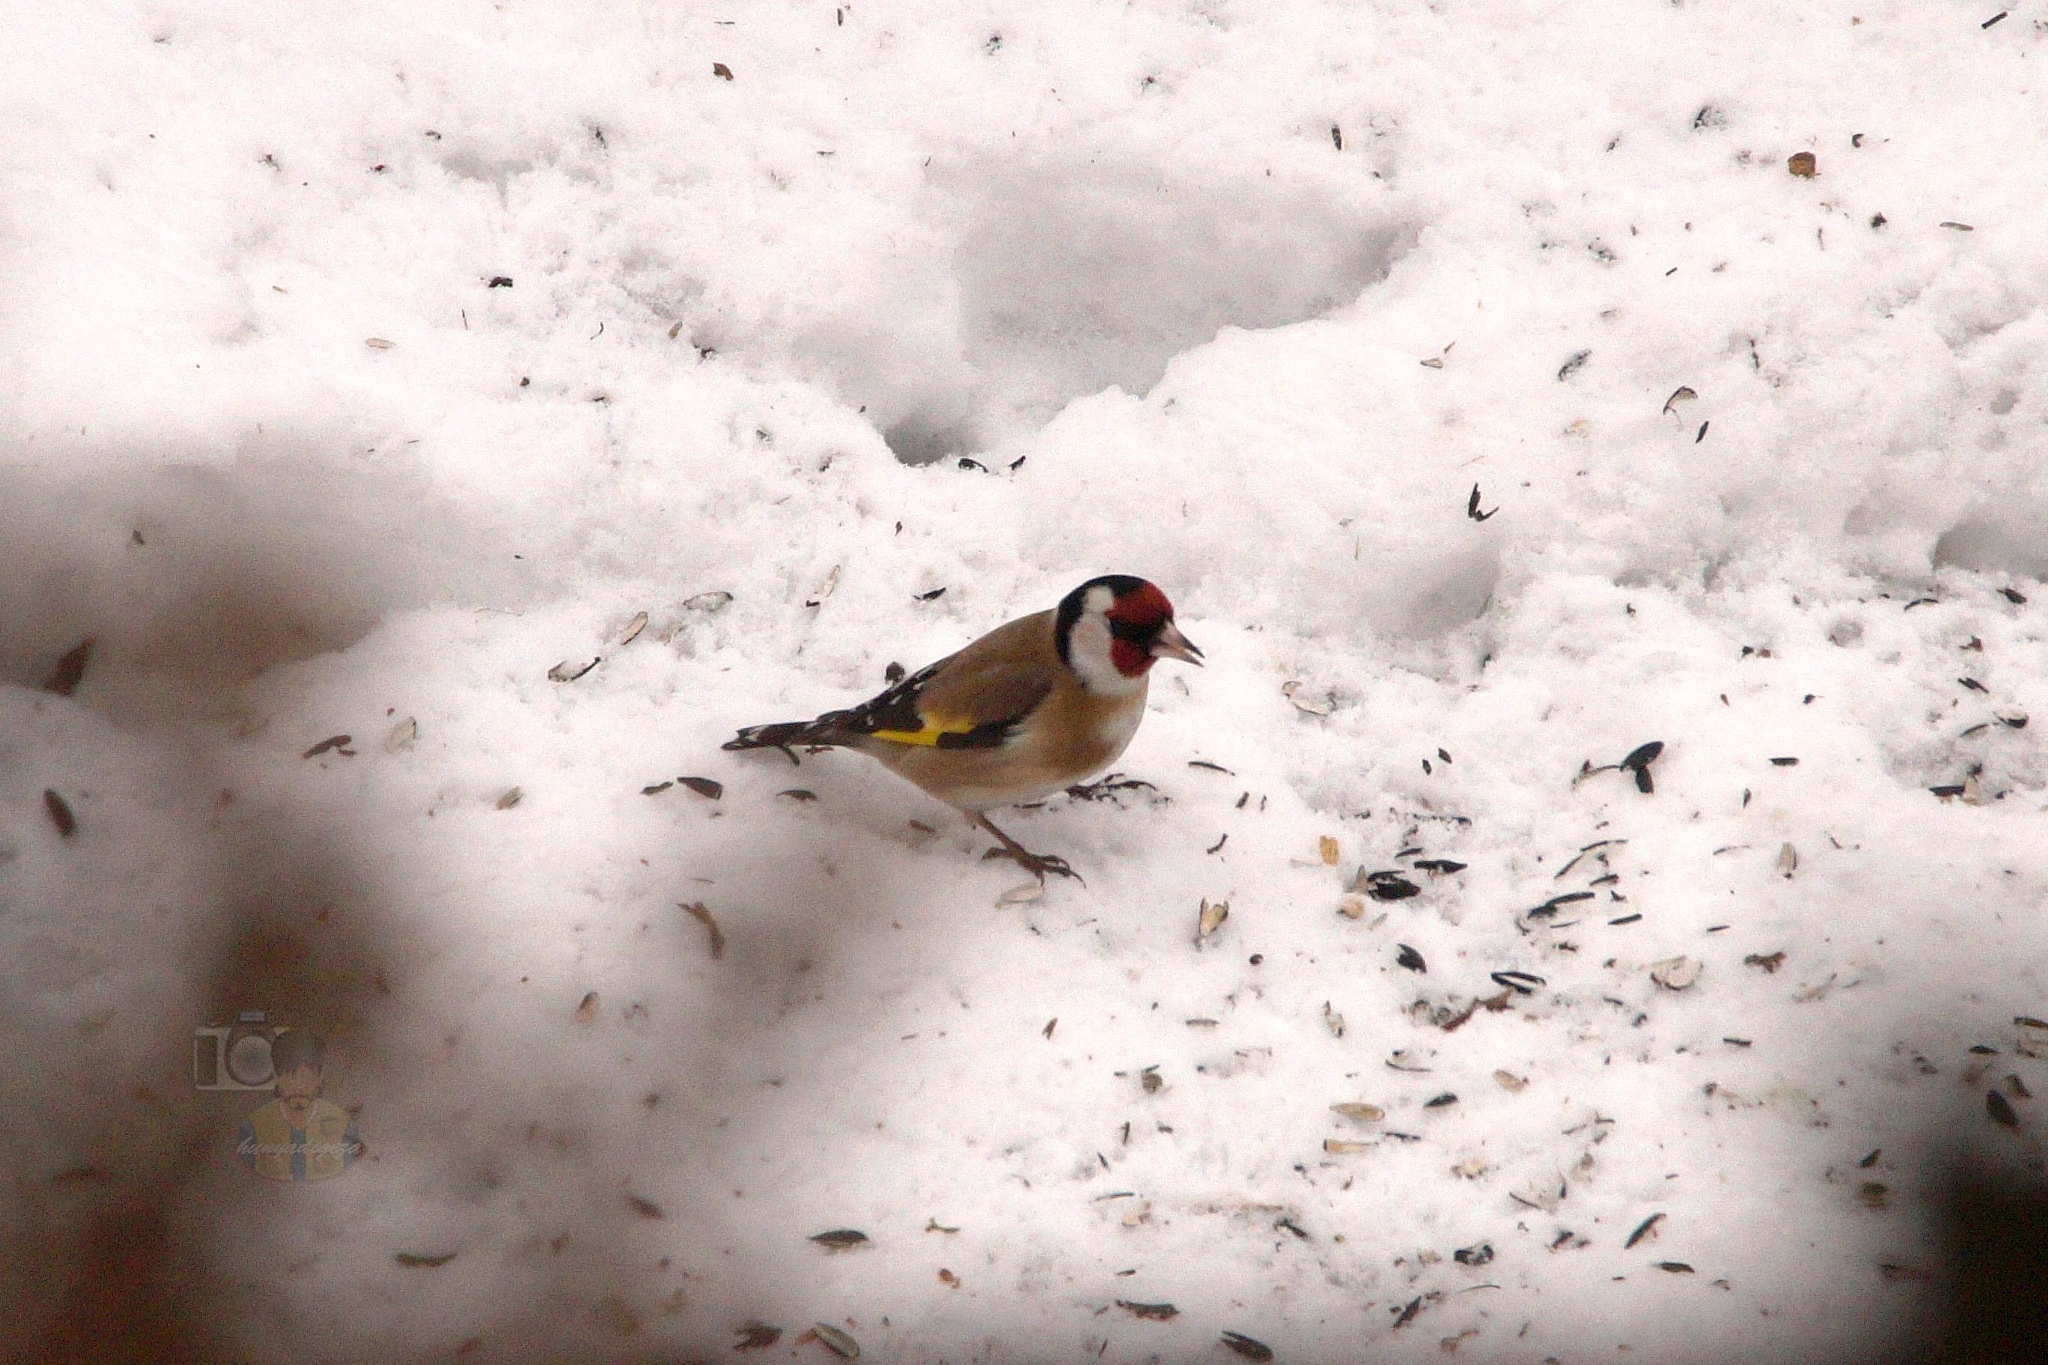 Mar.03, The goldfinch in my garden by hunyadigeza